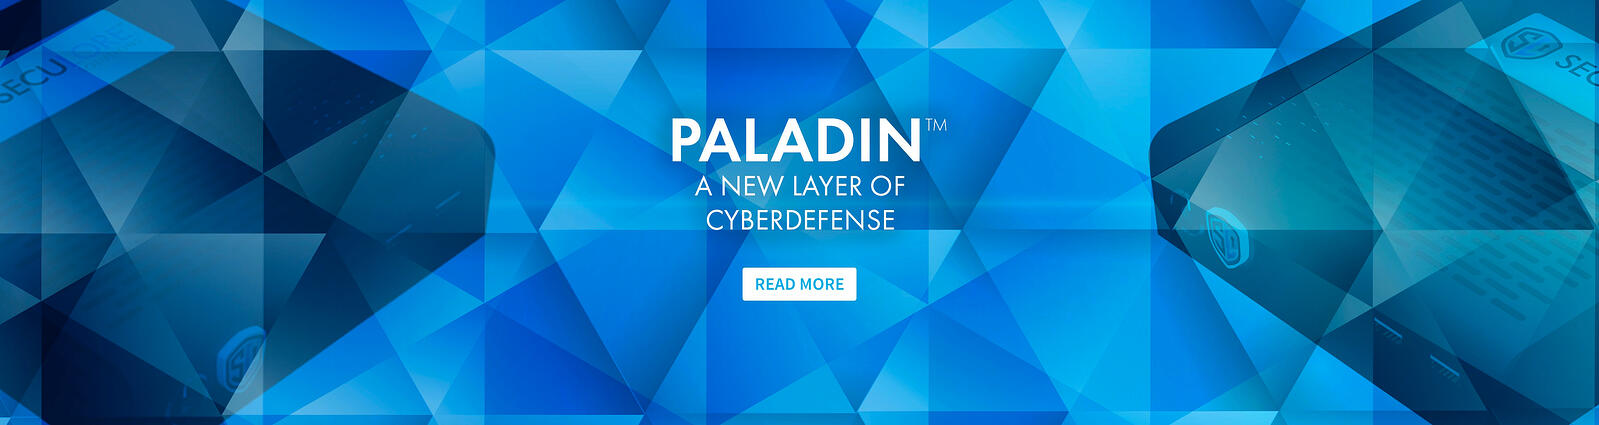 Paladin™: A New Layer of Cyberdefense